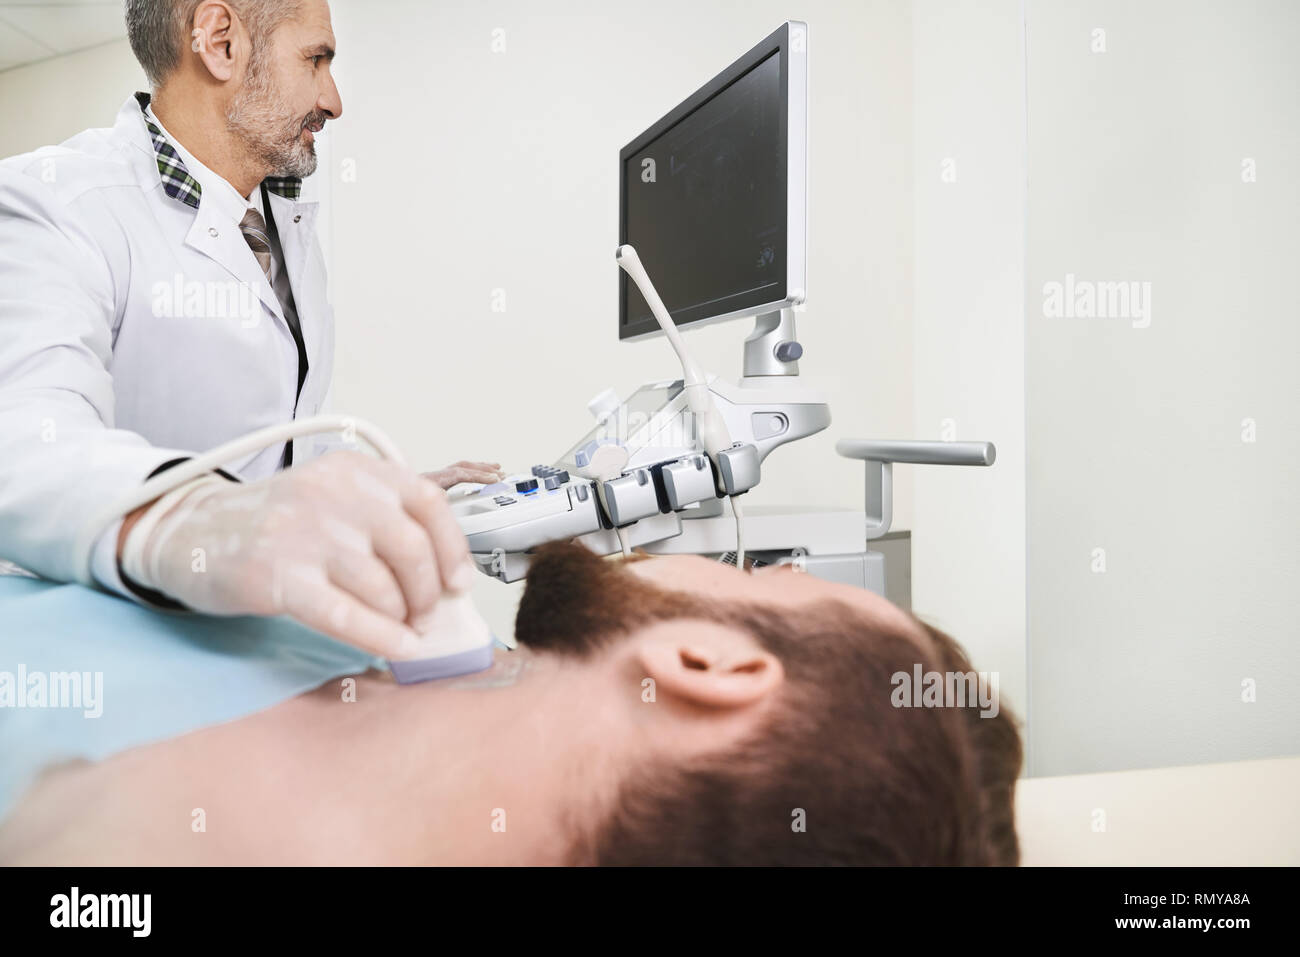 Sonography, ultrasound diagnostics of lymph nodes on neck. Bearded man lying in medical cabinet. Doctor wearing in white, medical gown and gloves doing examination with ultrasound probe. - Stock Image